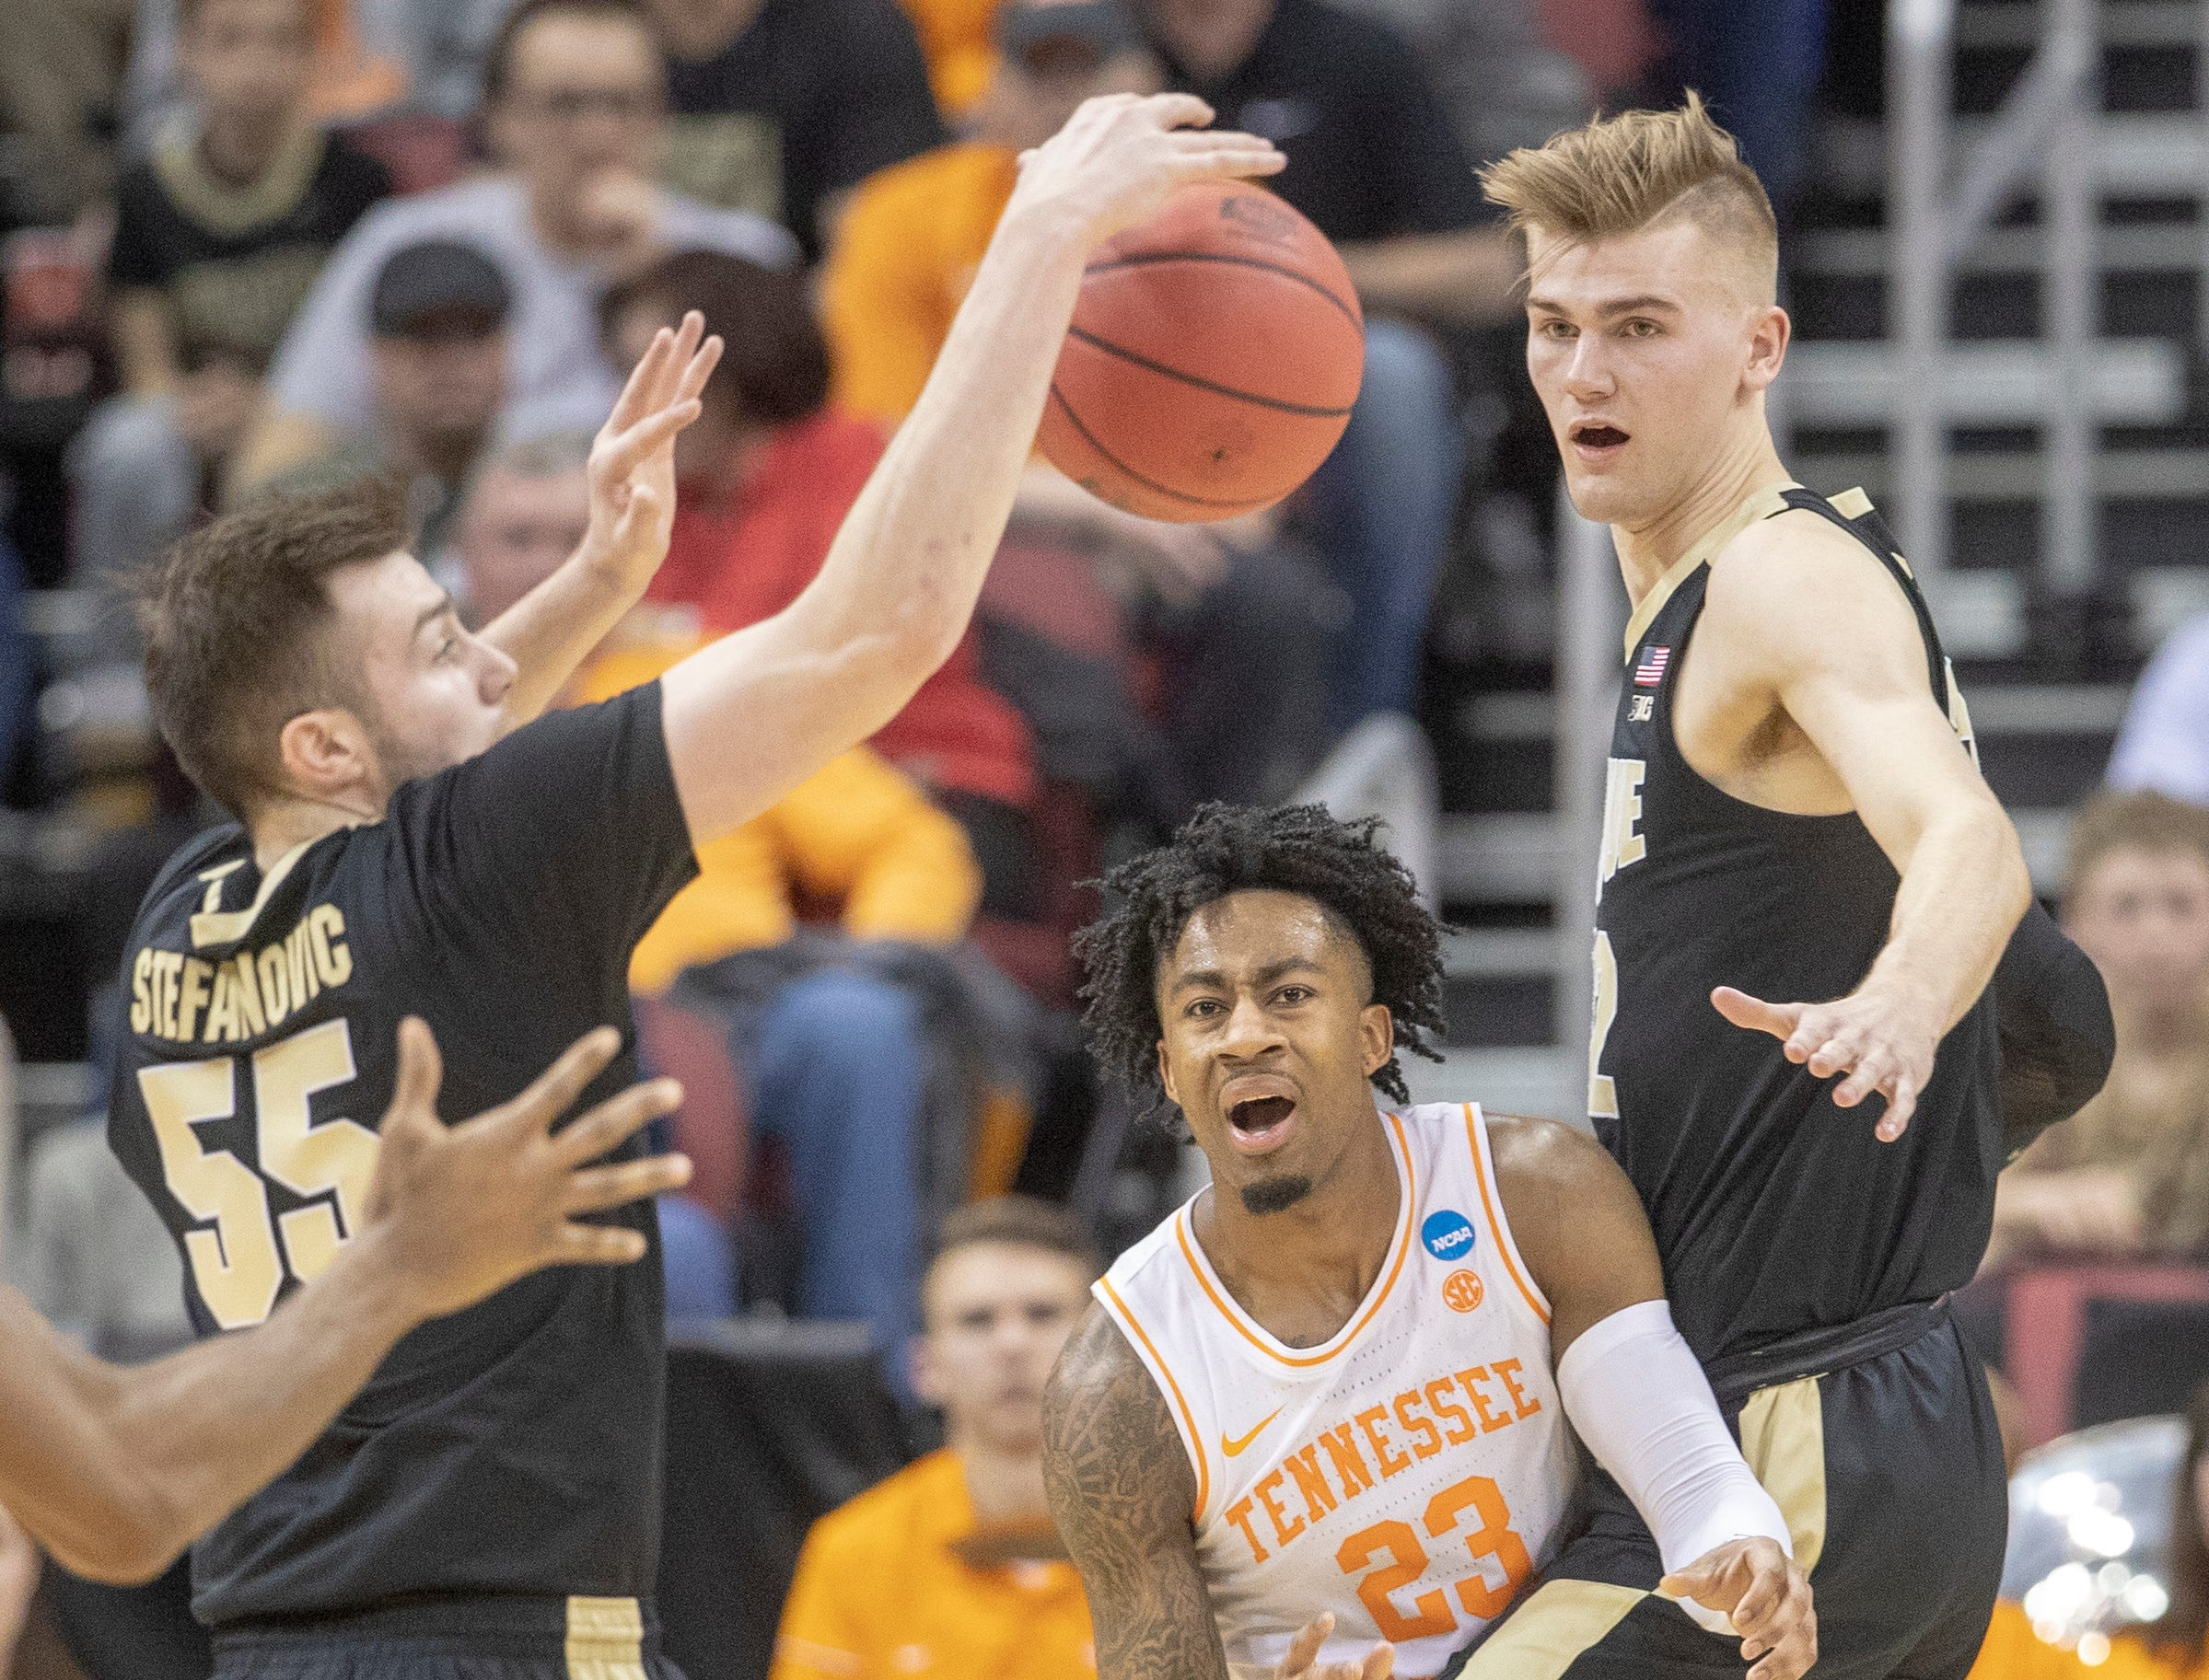 Jordan Bowden of the Tennessee Volunteers looks in despair as his pass was intercepted by Sasha Stefanovic of the Purdue Boilermakers, as Matt Haarms of the Purdue Boilermakers watches, NCAA Division 1 Men's Basketball 'Sweet Sixteen' game, KFC Yum Center, Louisville, Thursday, March 28, 2019. Purdue beat Tennessee 99-94.